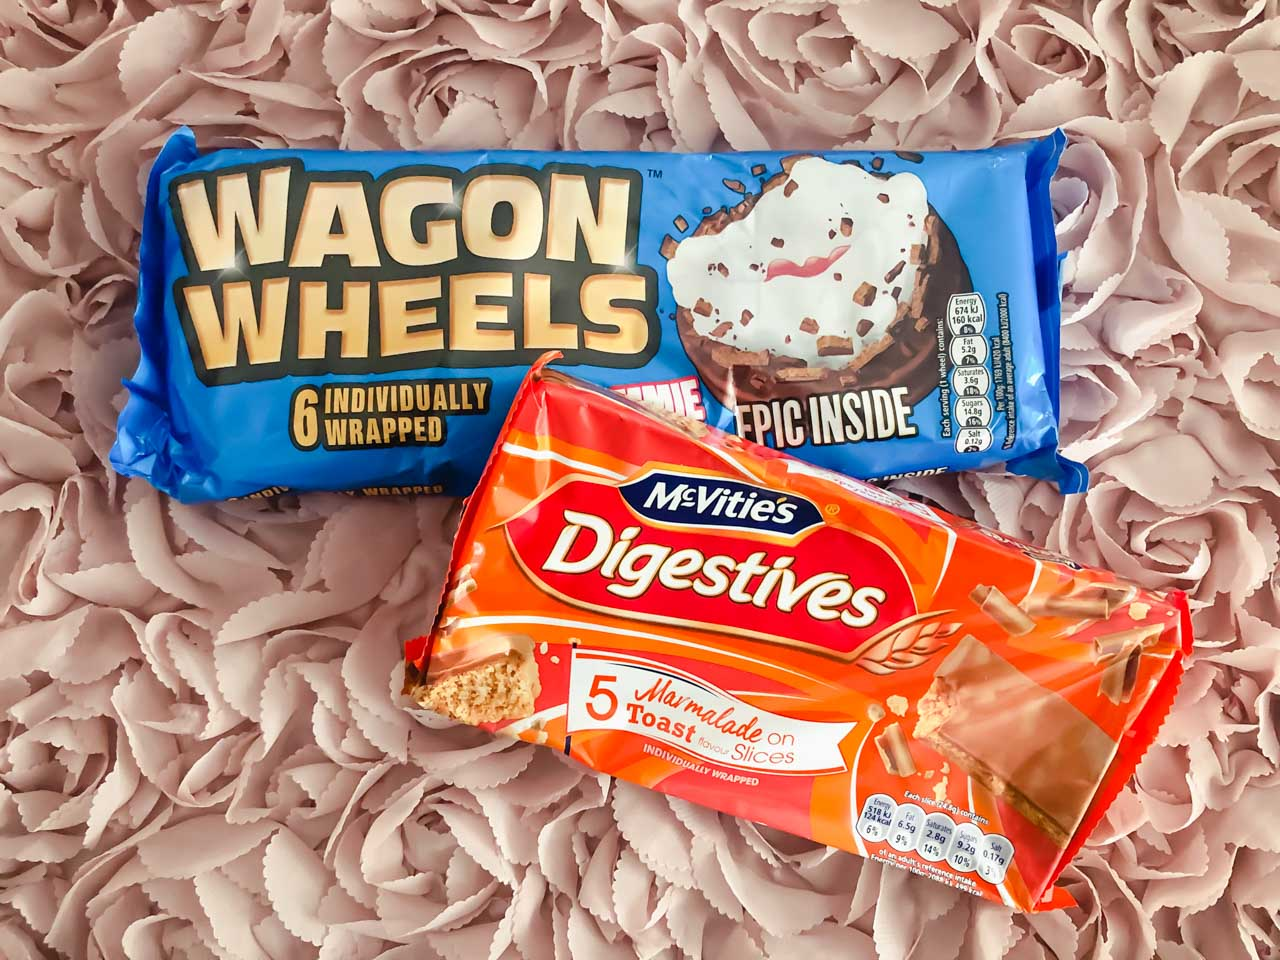 A pack of Wagon Wheels and marmalade on toast Digestives against a pink background